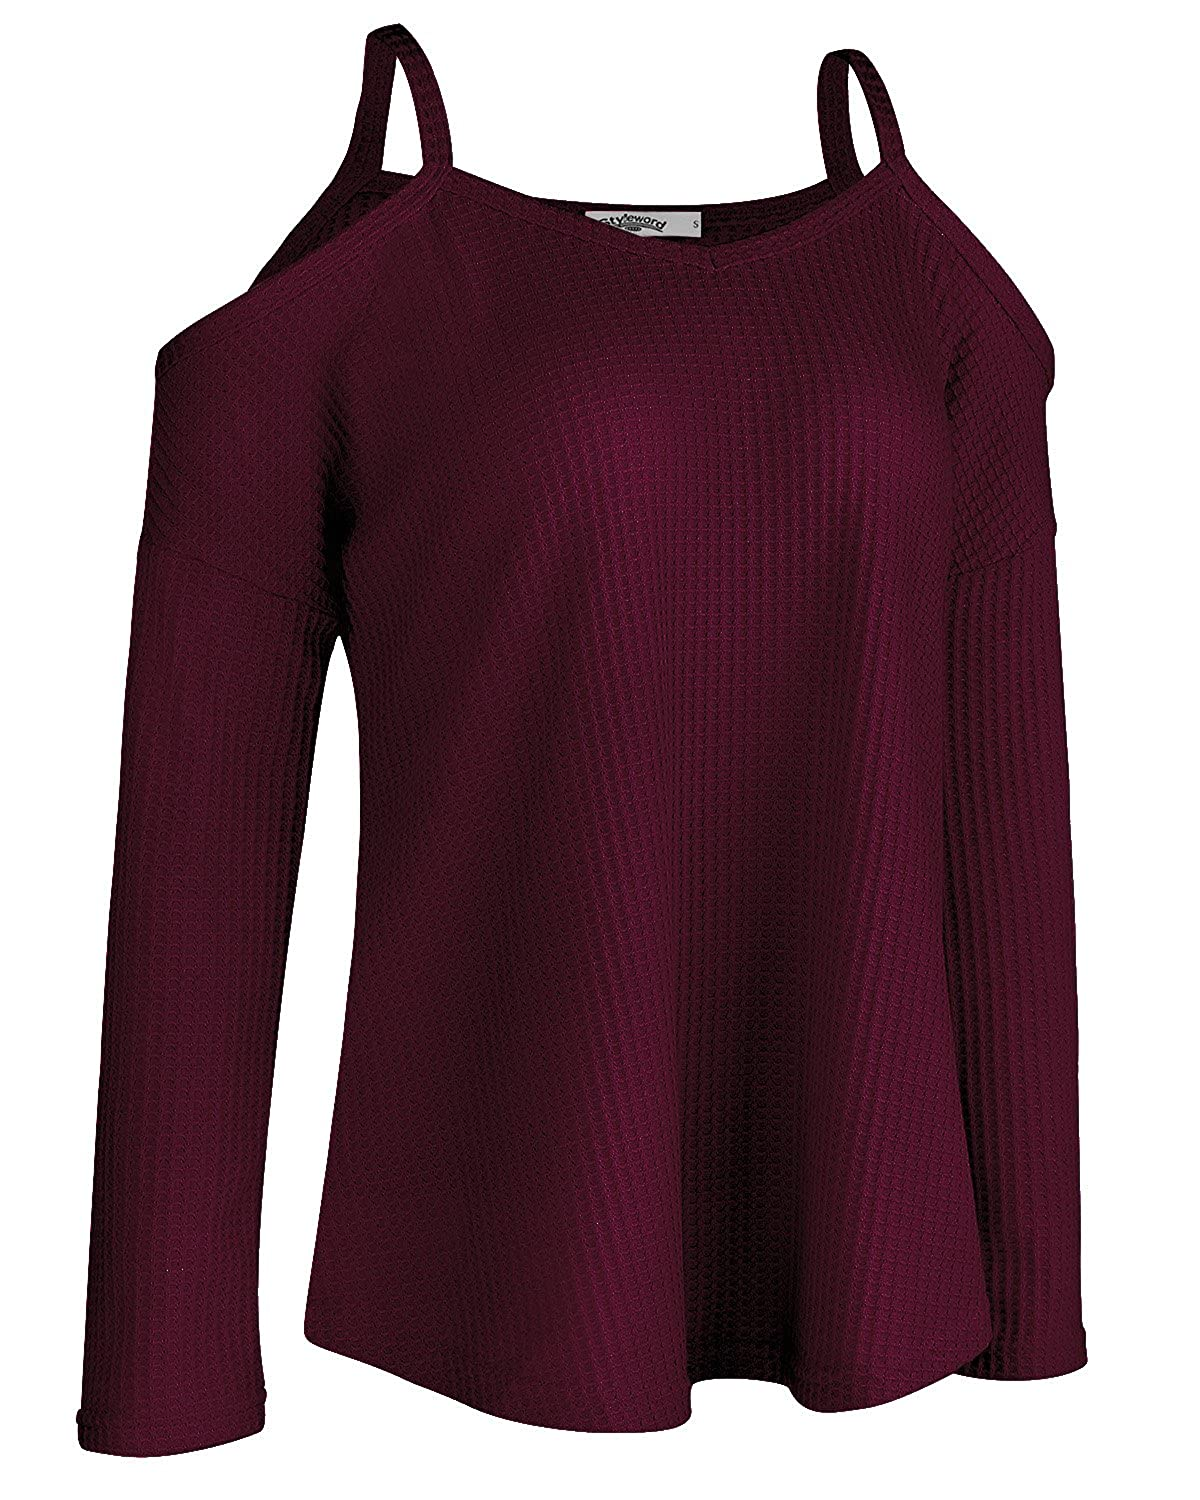 STYLEWORD Womens Off Shoulder Loose Casual Knitted Sweater Top Blouse